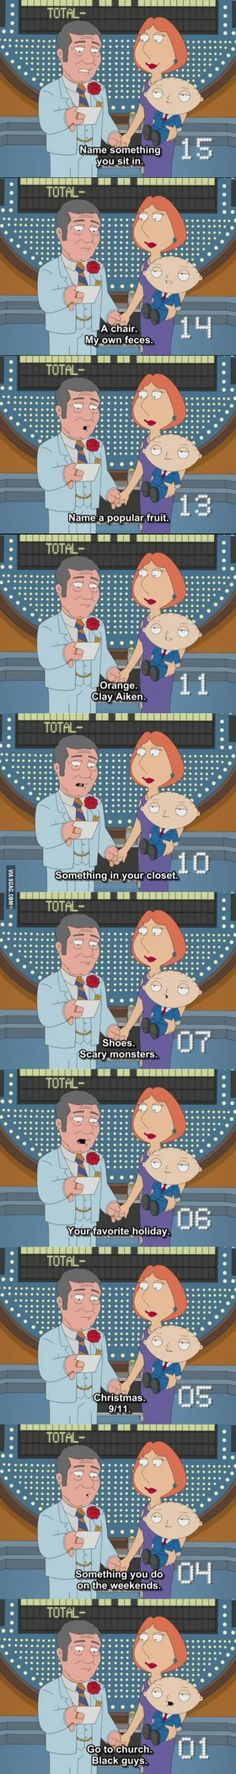 Stewie Griffin strikes again. I always do this when Family Feud is on